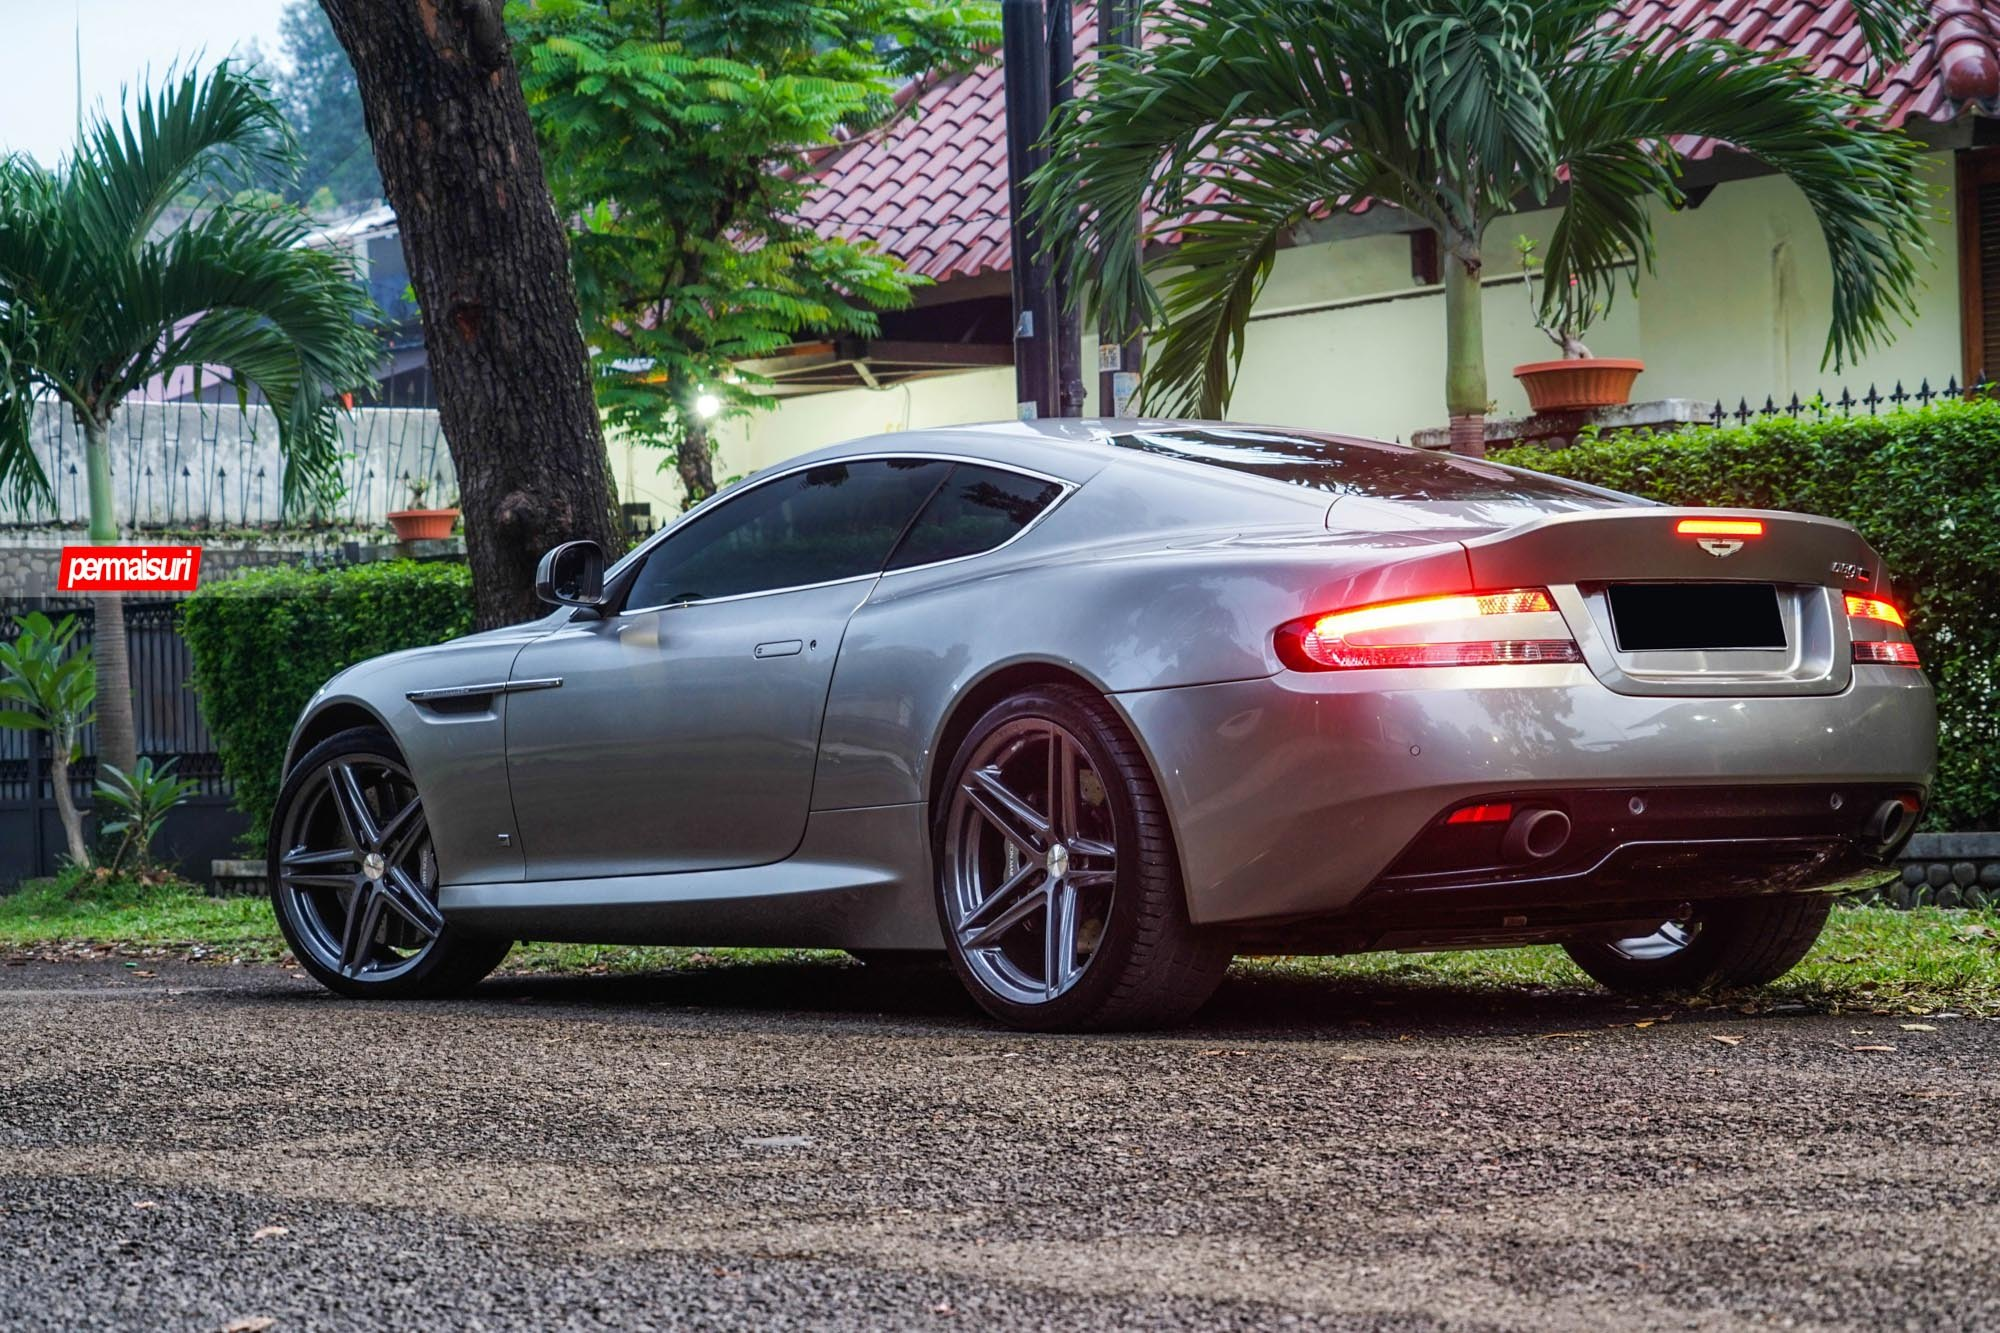 Aston Martin With Aftermarket Led Taillights Photo By Vossen